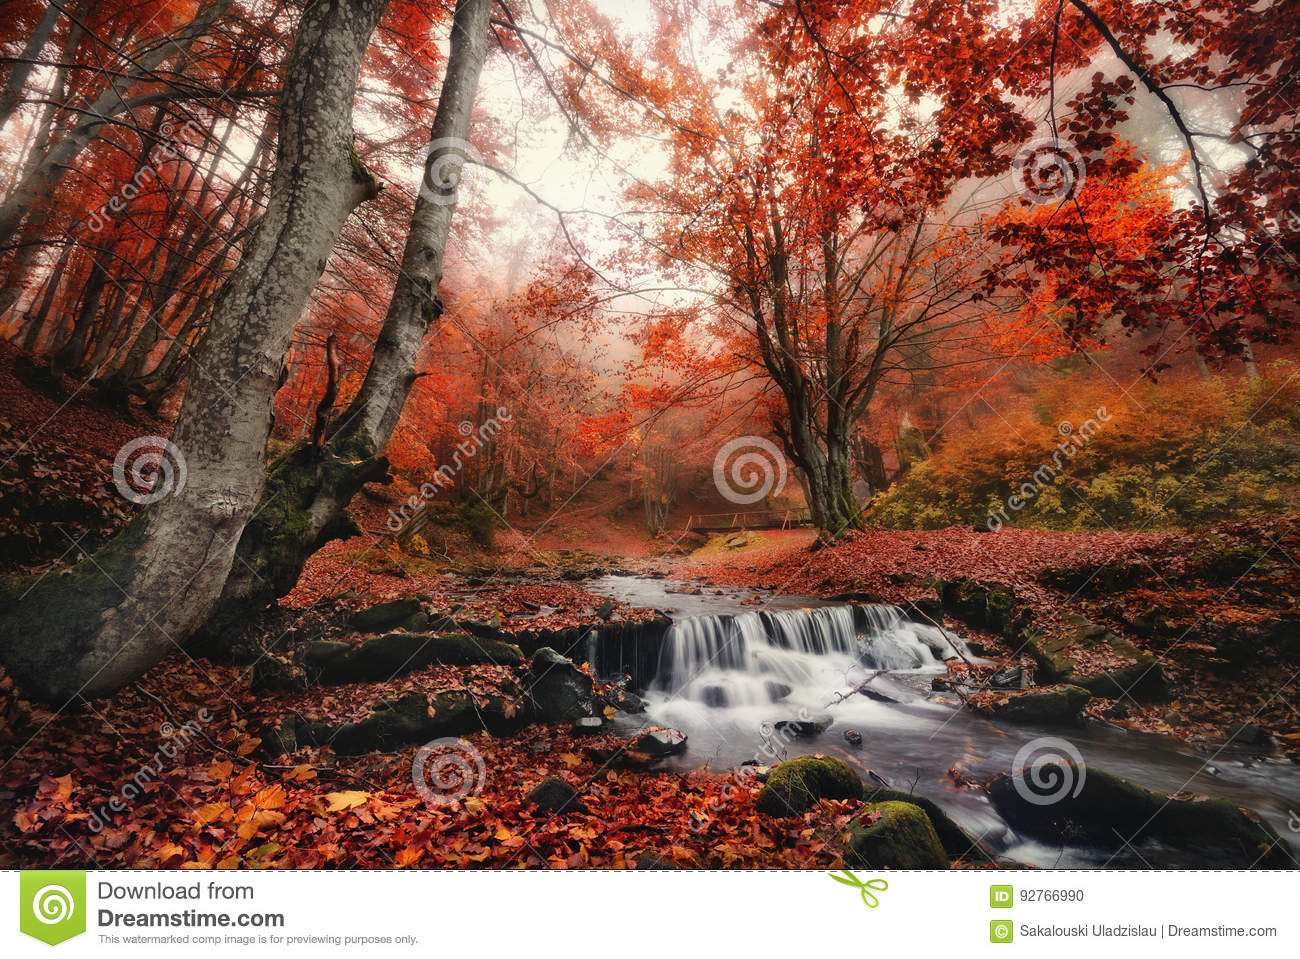 Autumn Forest Landscape With Beautiful Creek e piccolo ponte Foglie incantate di rosso di Autumn Foggy Beech Forest With ed insen